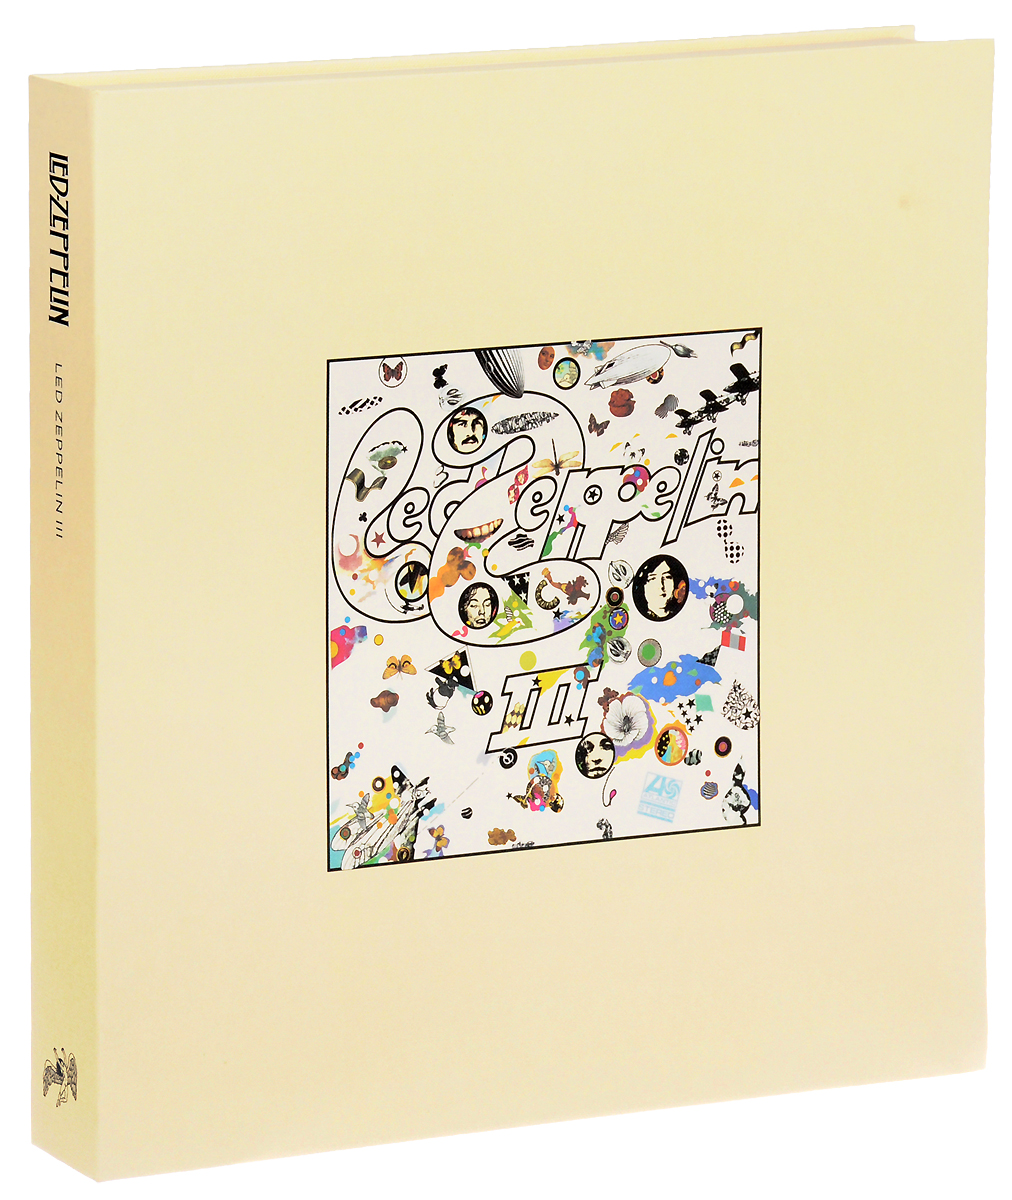 Led Zeppelin Led Zeppelin. Led Zeppelin III. Super Deluxe Edition (2 LP + 2 CD) led zeppelin led zeppelin celebration day blu ray audio